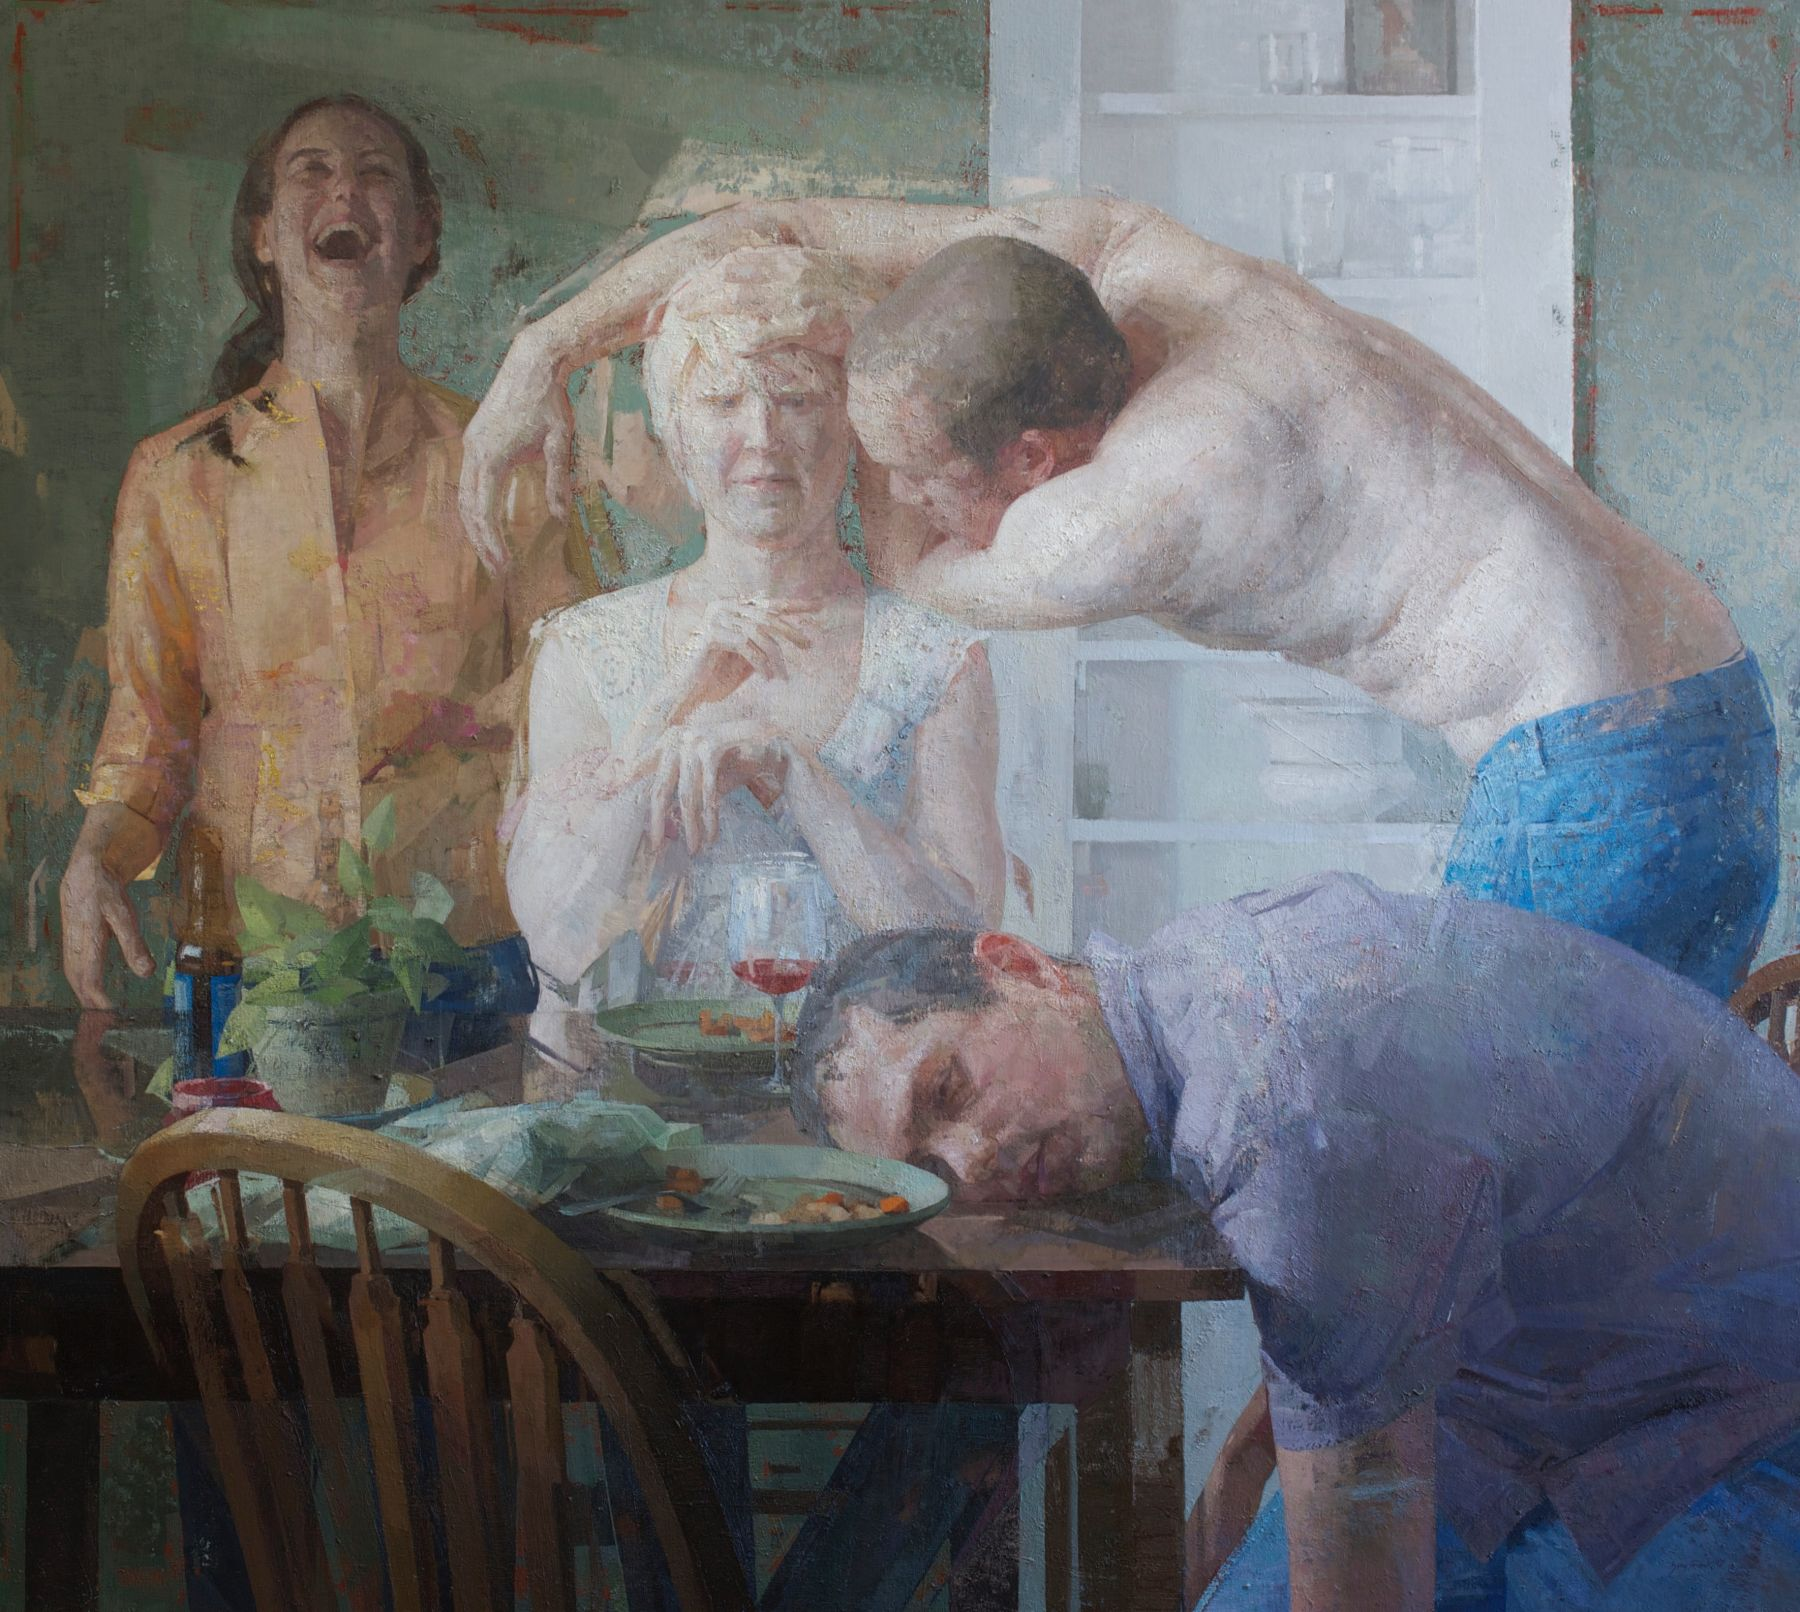 Zoey Frank, Dinner Party, 2017